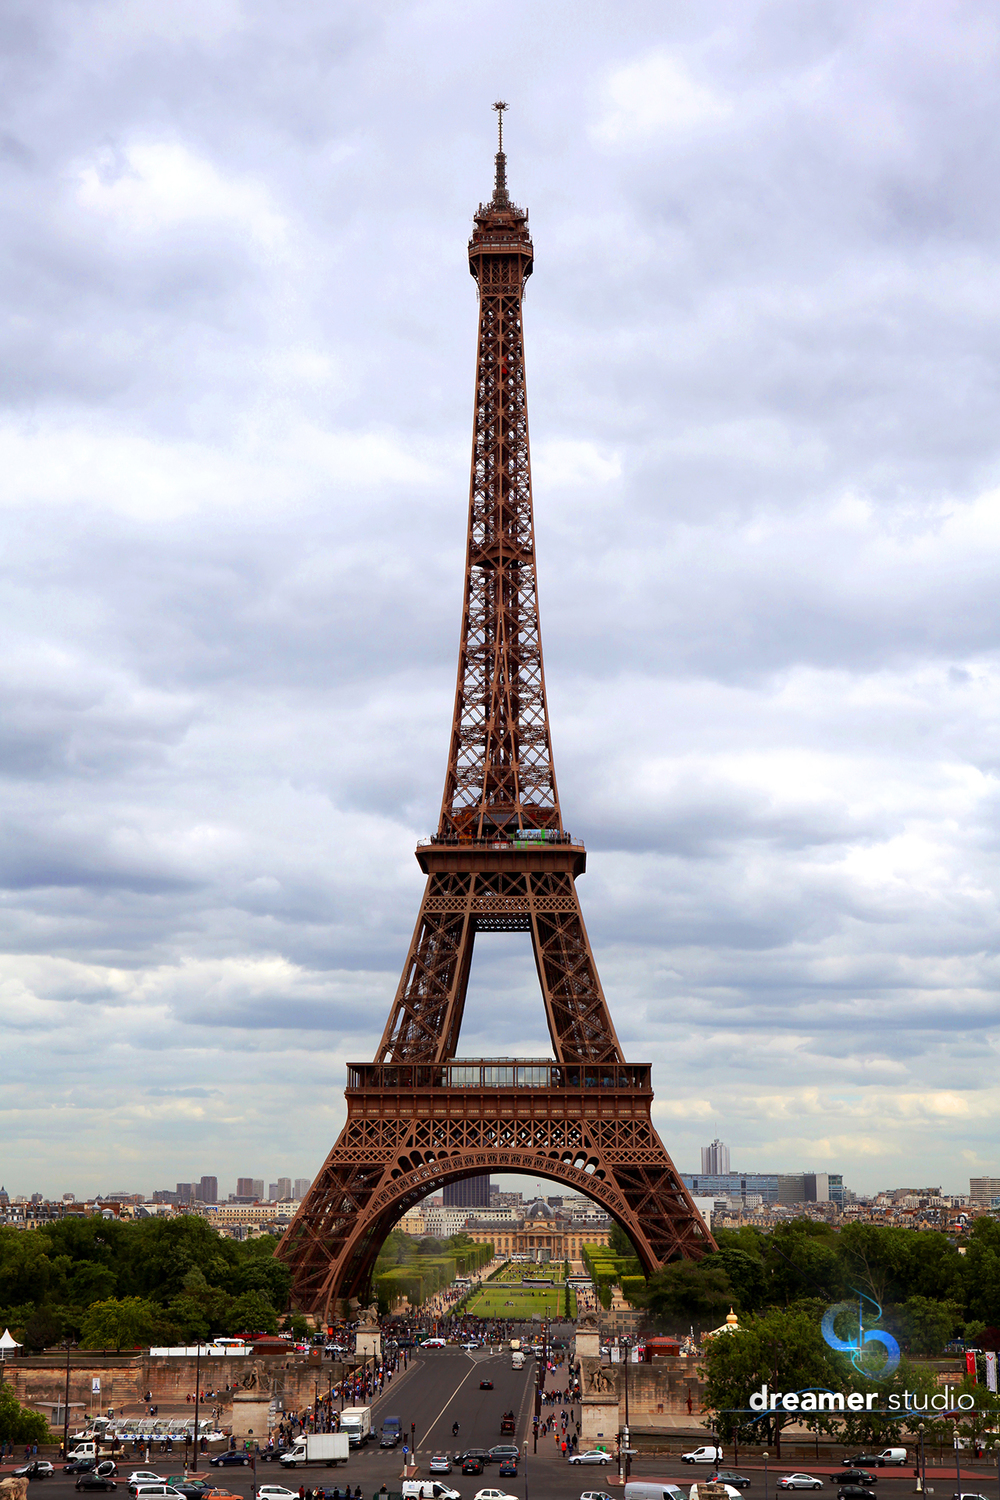 Paris_IMG_2065_small.jpg